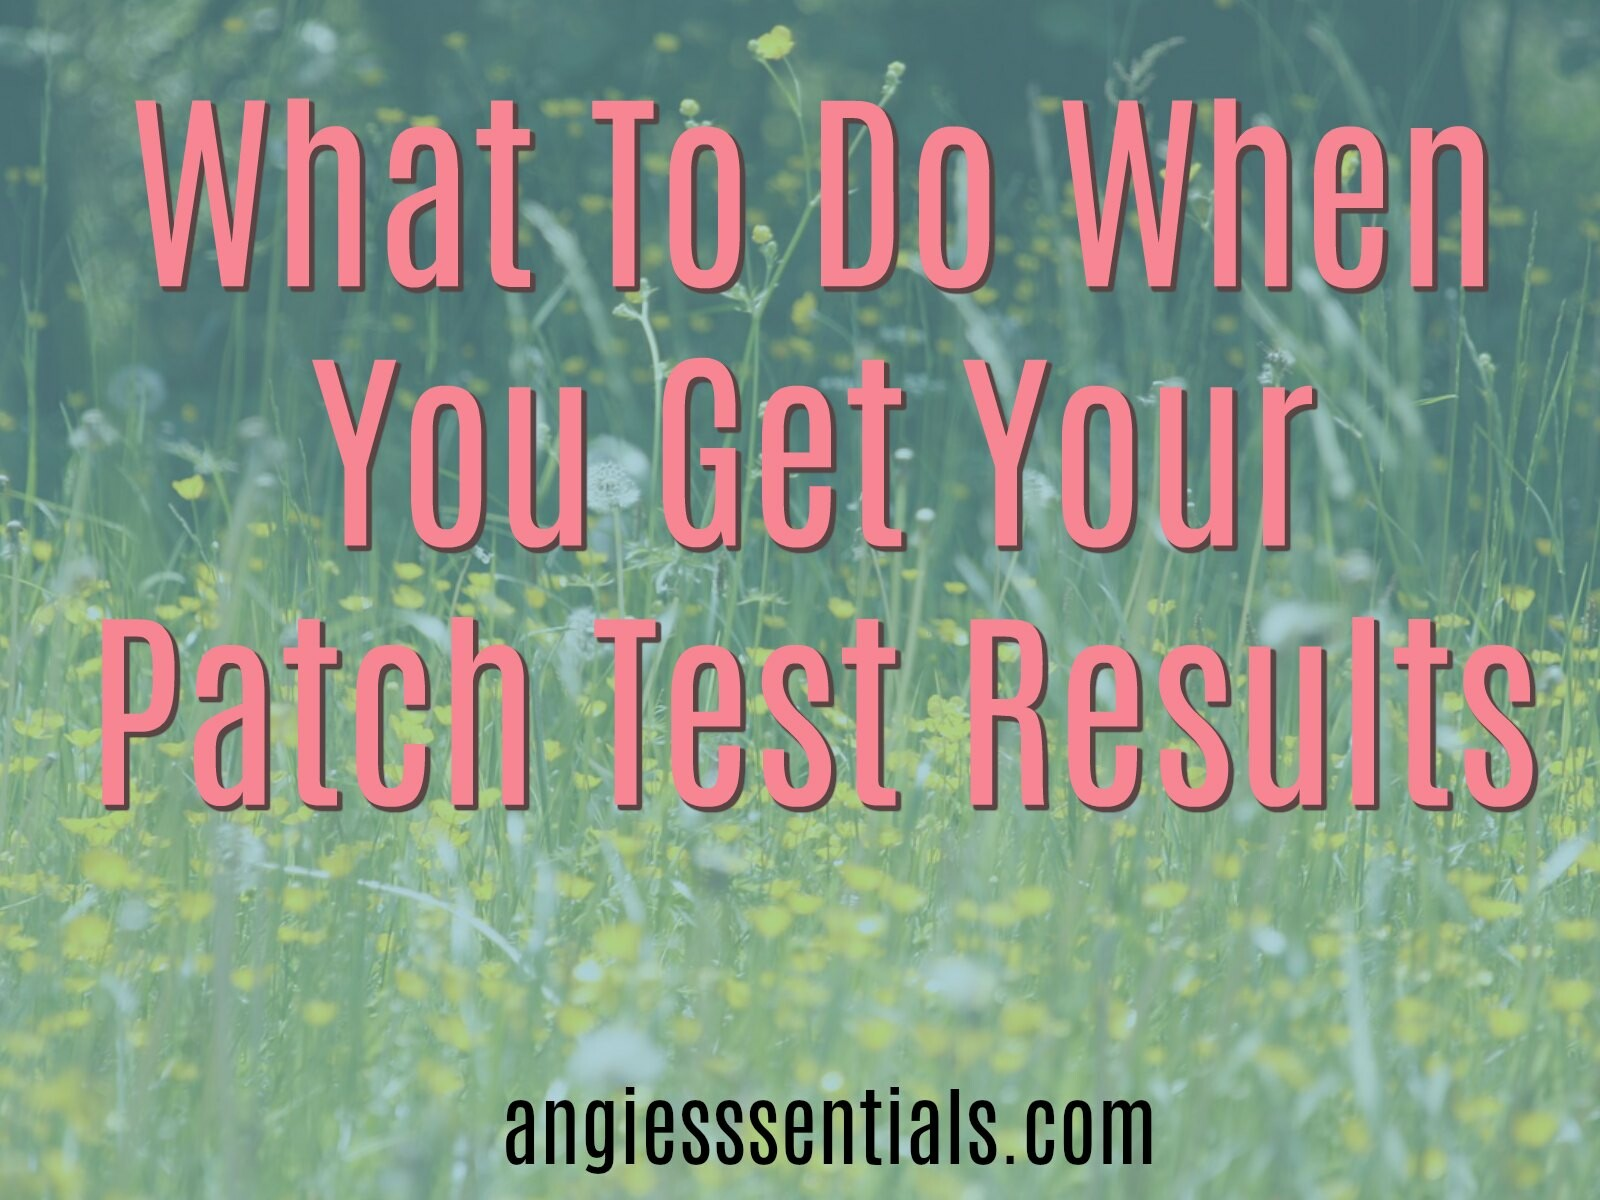 What to Do With your Patch Test Results